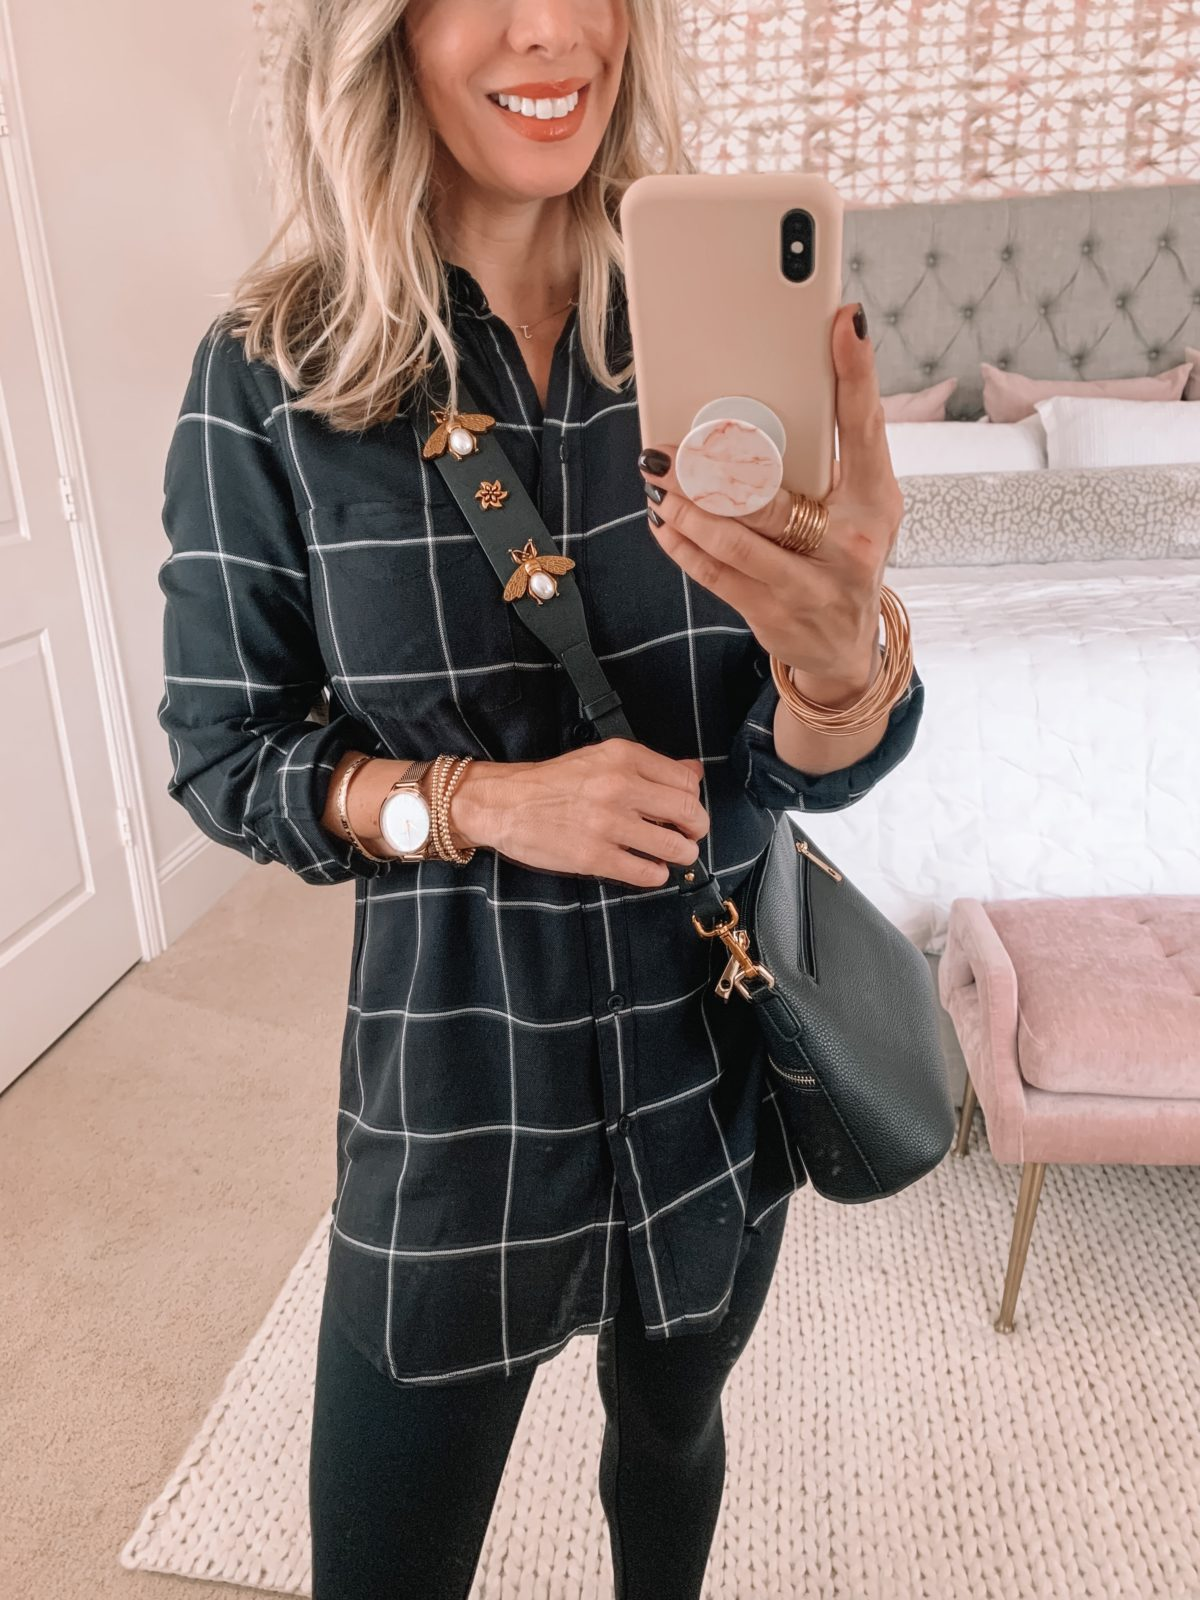 Amazon Fashion Finds, Button Down Top, Leggings, Booties, Crossbody